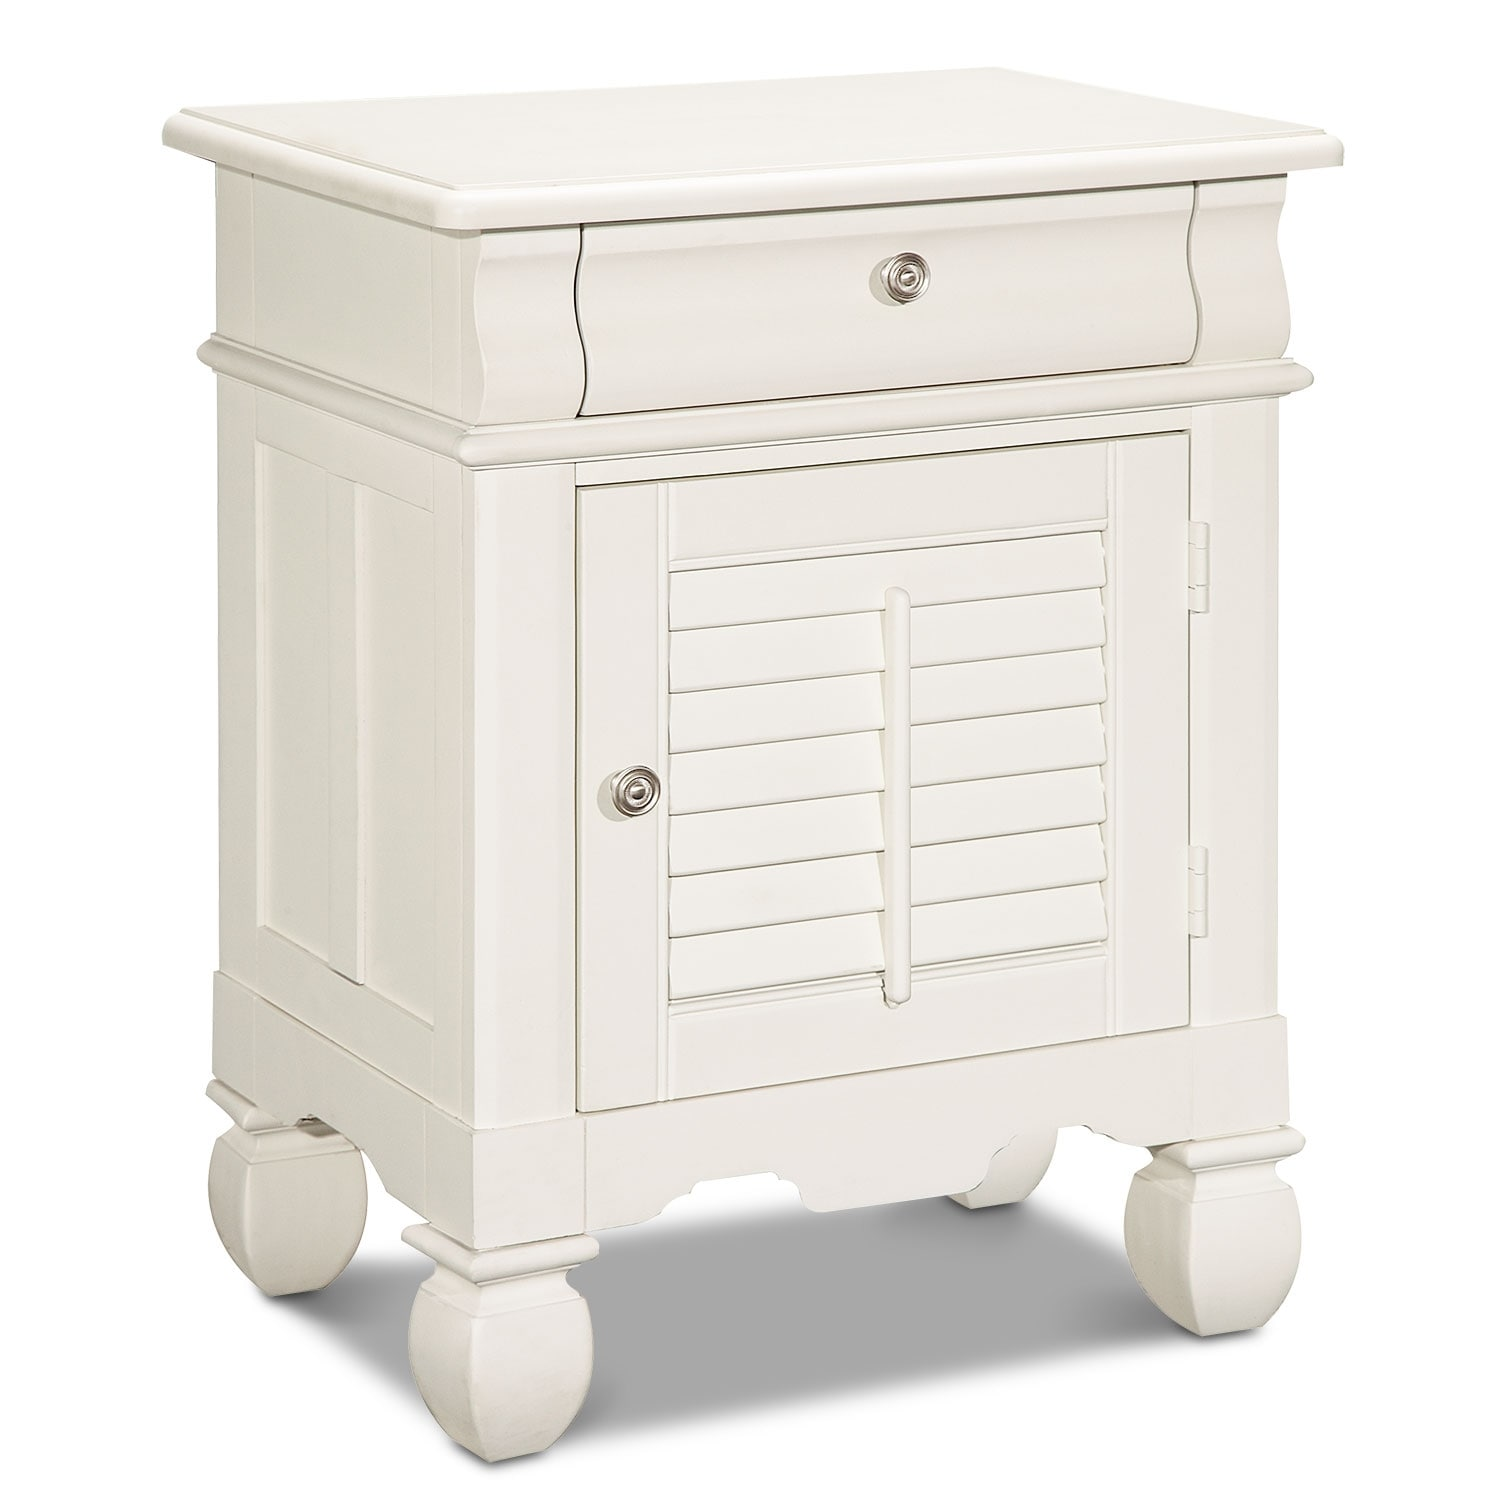 [Plantation Cove White Door Nightstand]